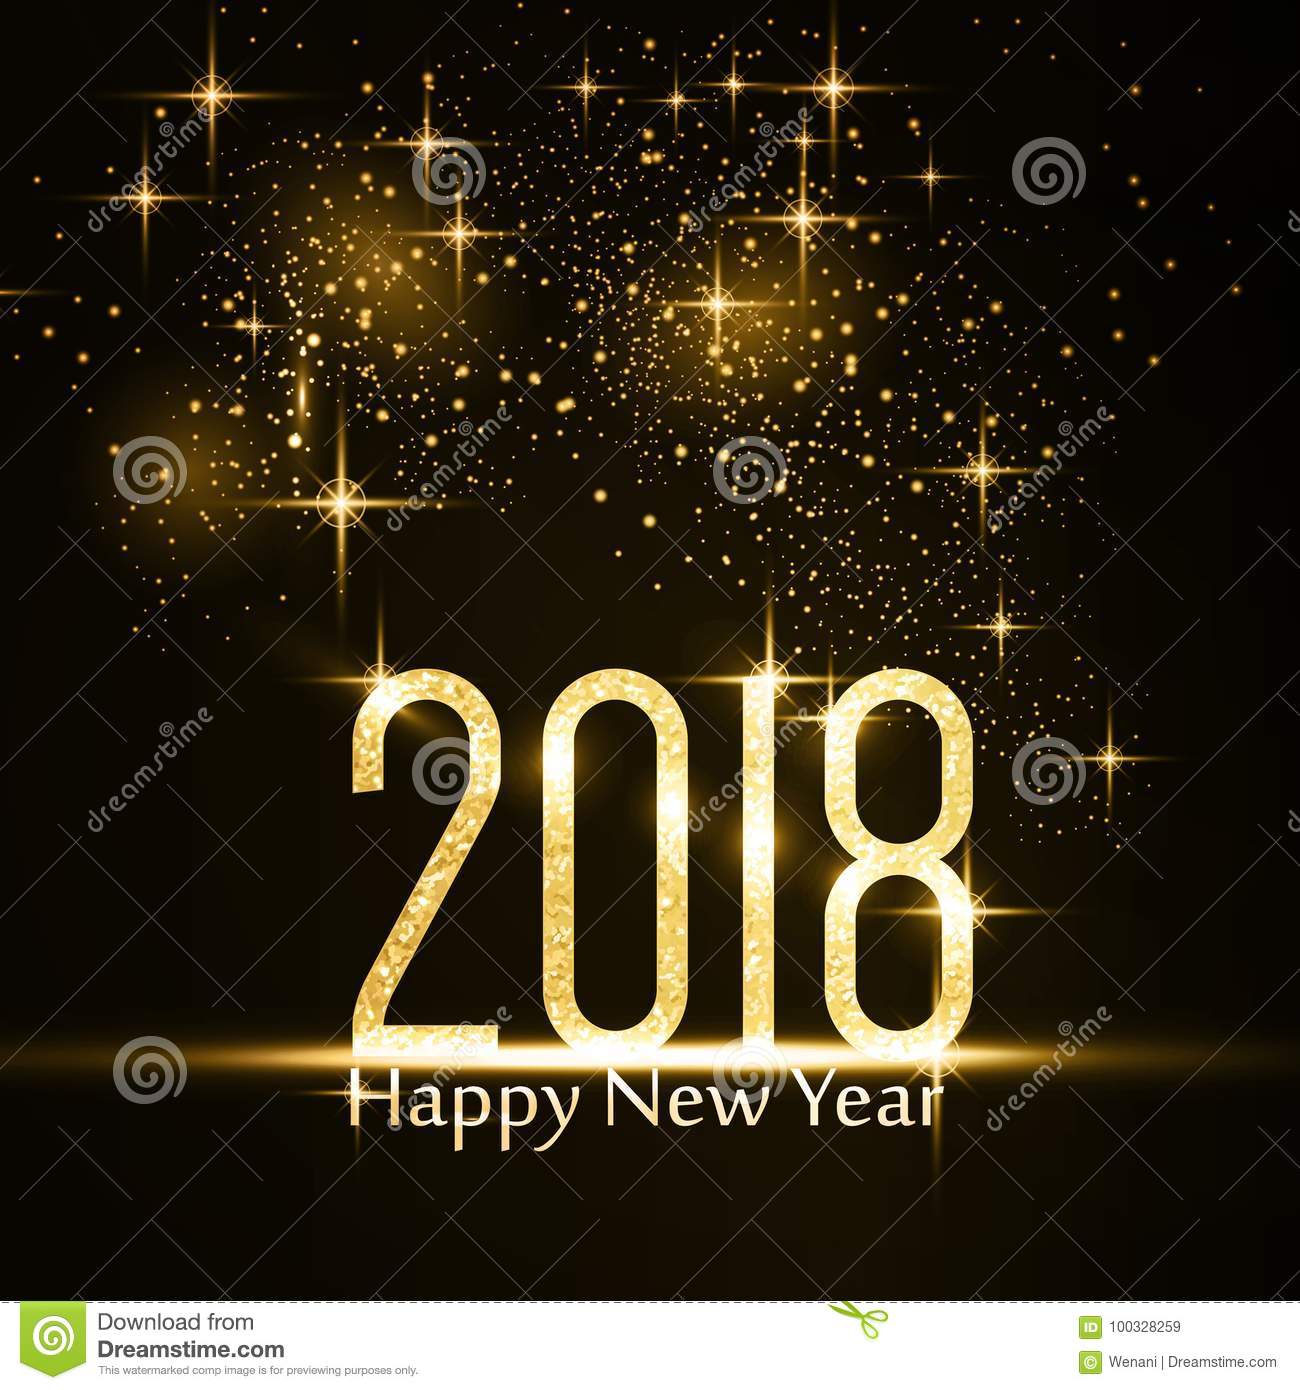 happy new year 2018 background with gold glitter